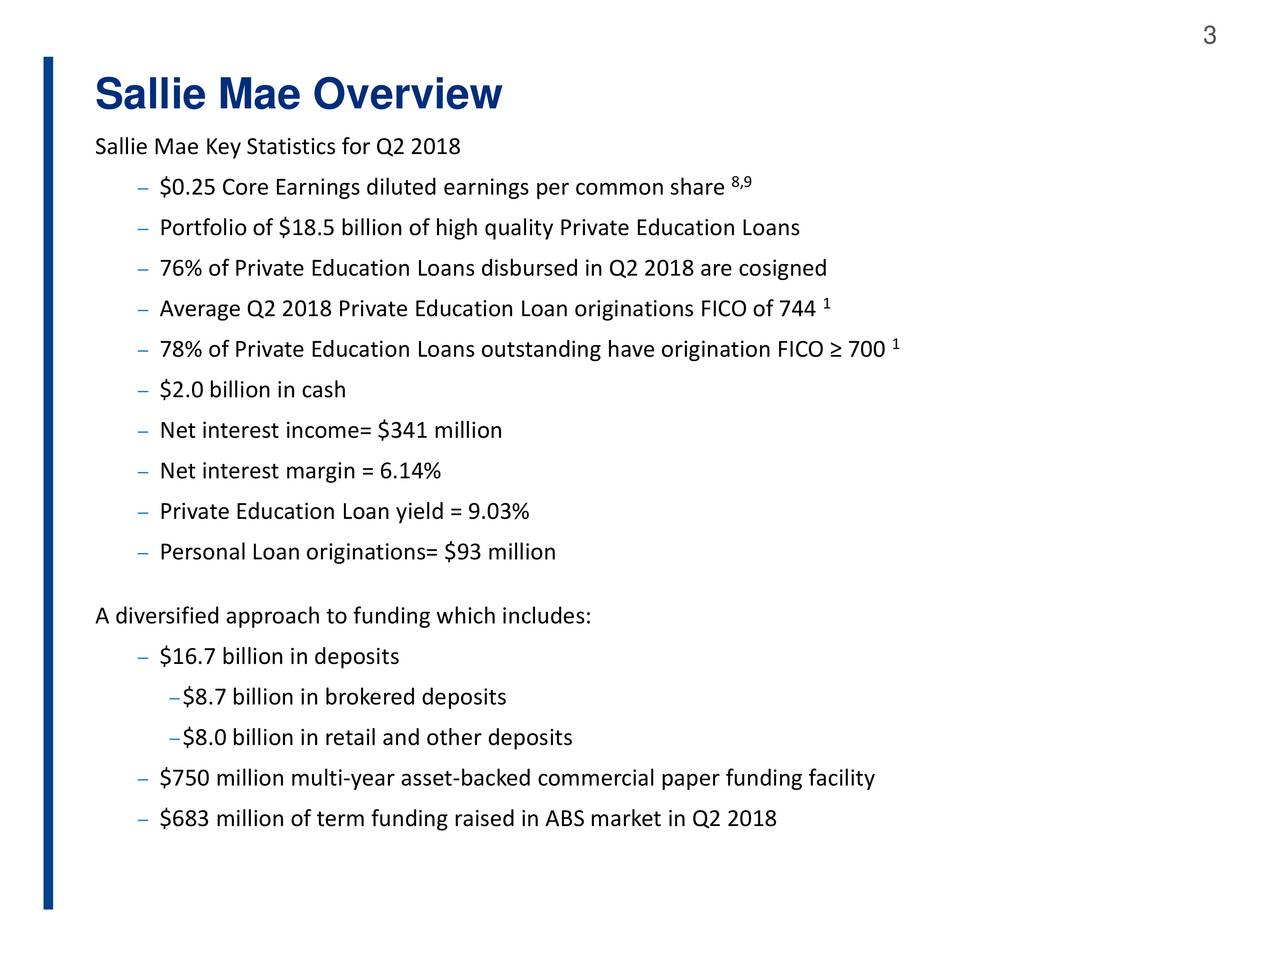 sallie mae overview sallie mae key statistics for q2 2018 025 core earnings diluted earnings